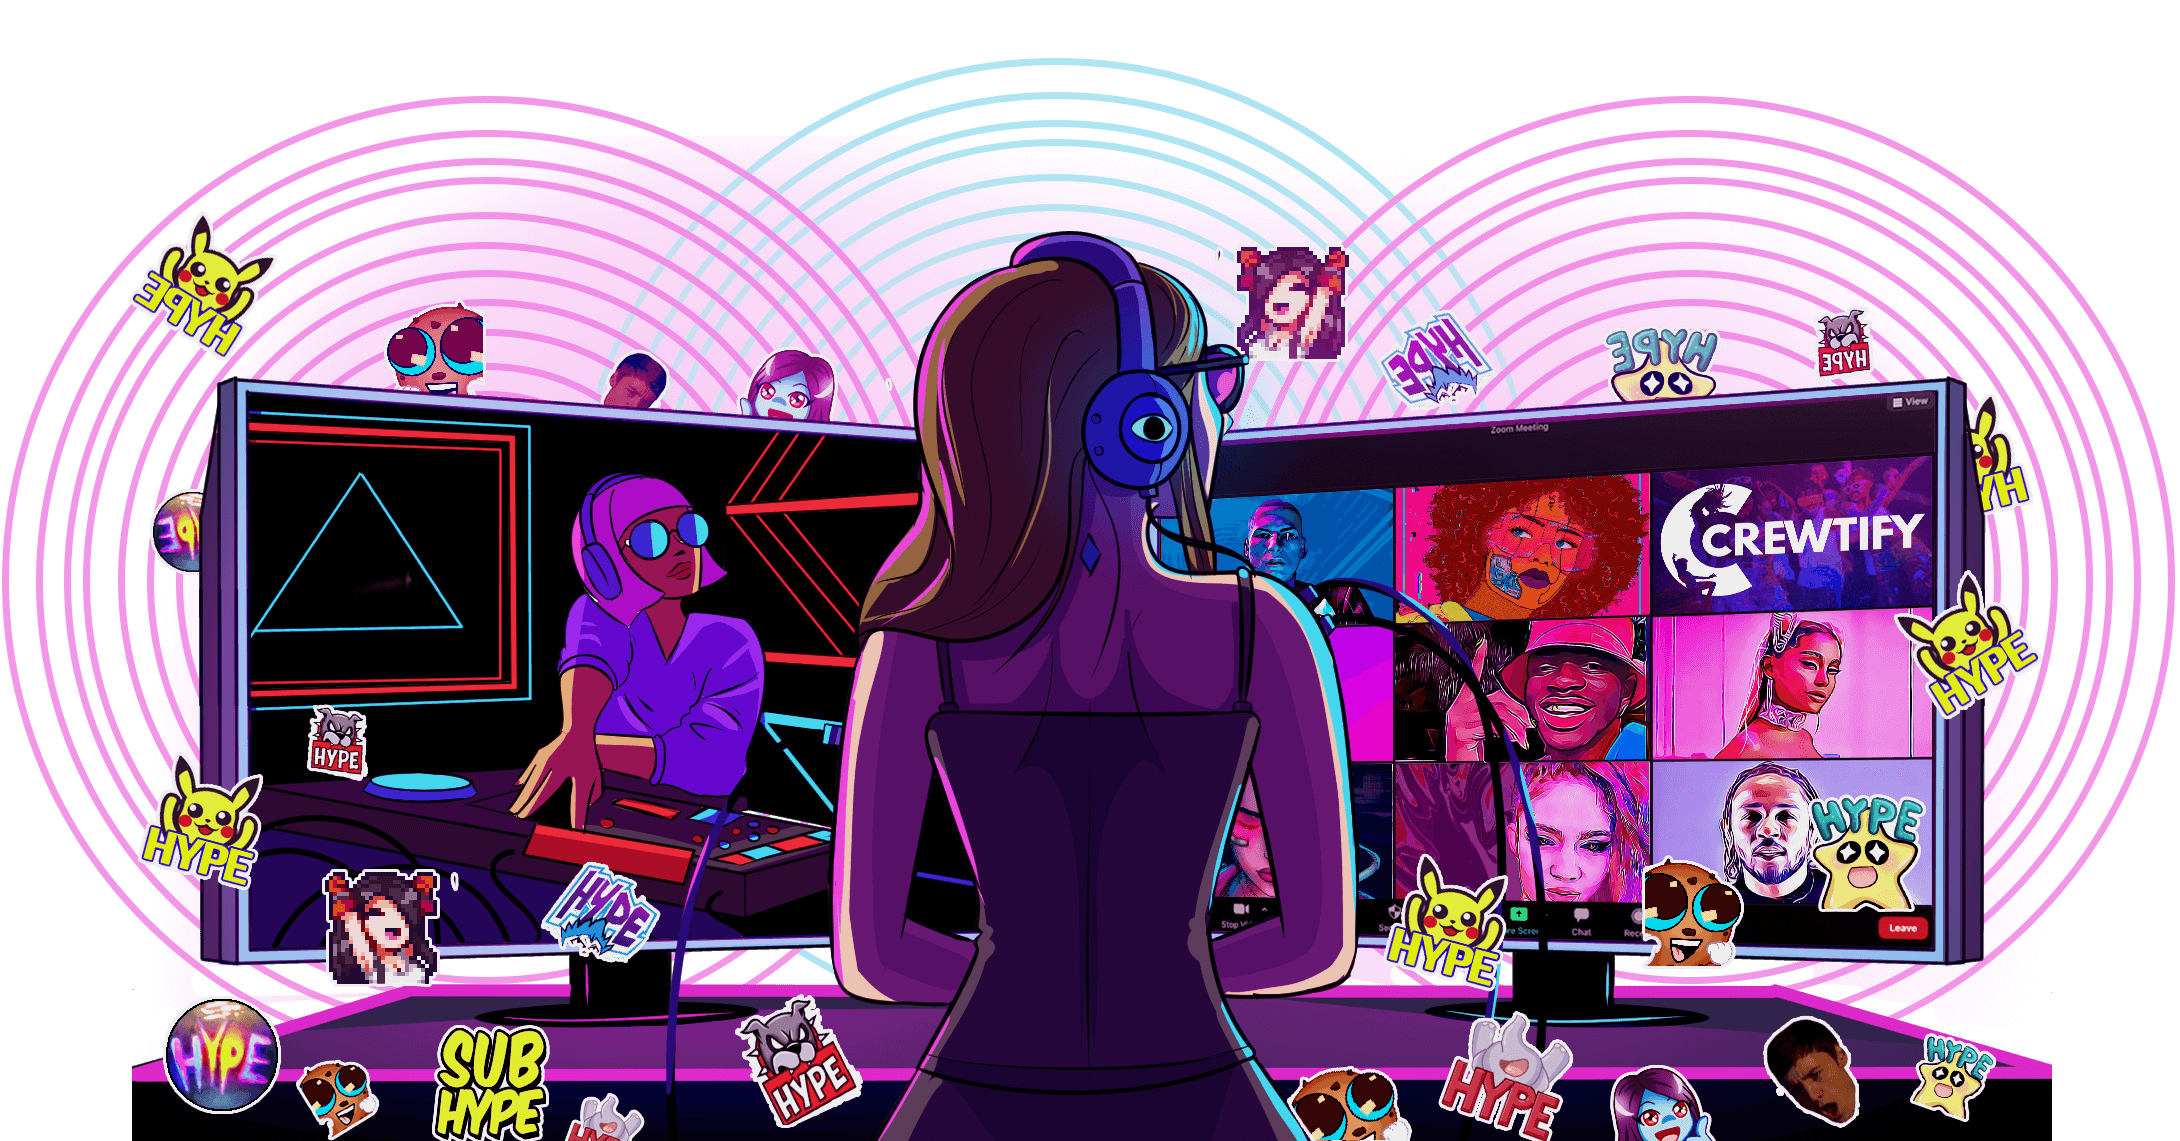 An illustration of online rave experience that involved two monitors: one for watching DJ performances and the other for virtual rave room.